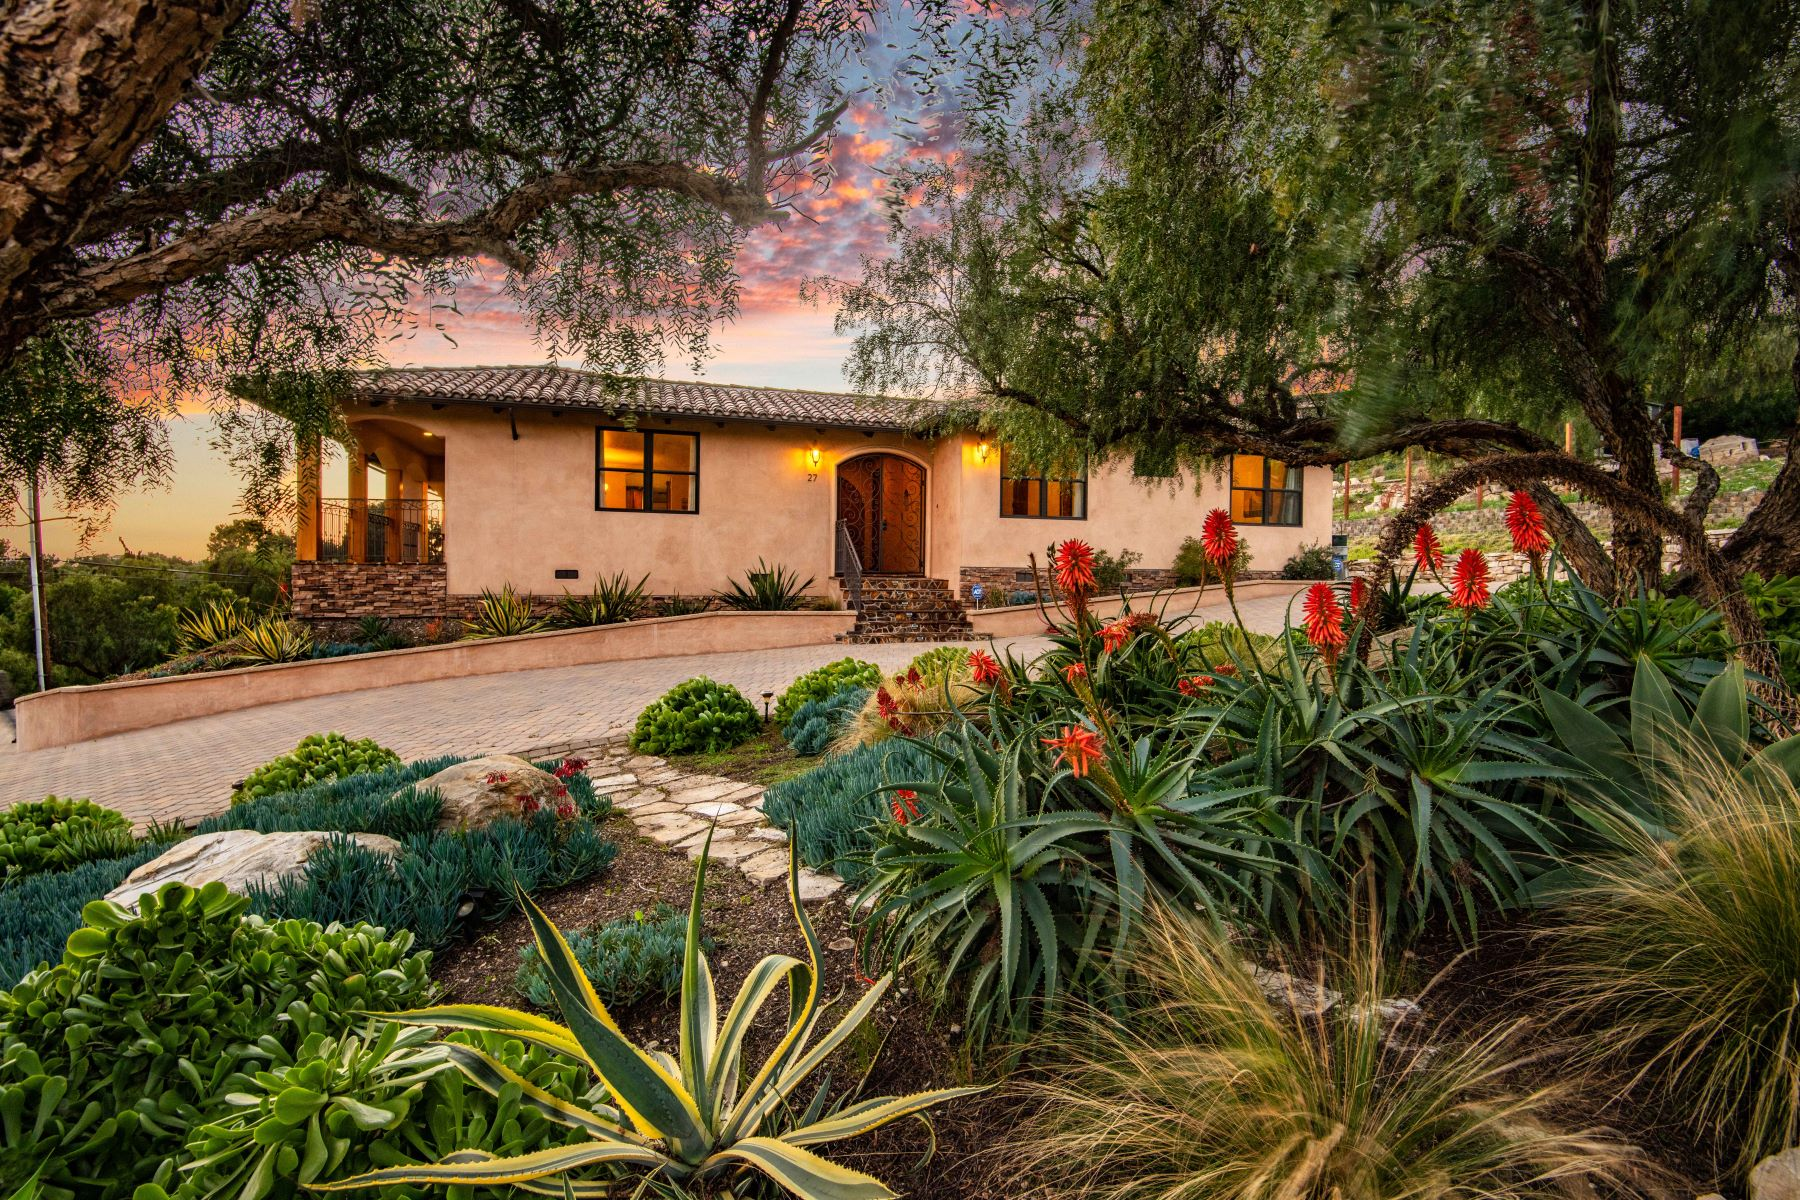 Single Family Homes for Active at 27 Cinnamon Lane, Rancho Palos Verdes, CA 90275 27 Cinnamon Lane Rancho Palos Verdes, California 90275 United States